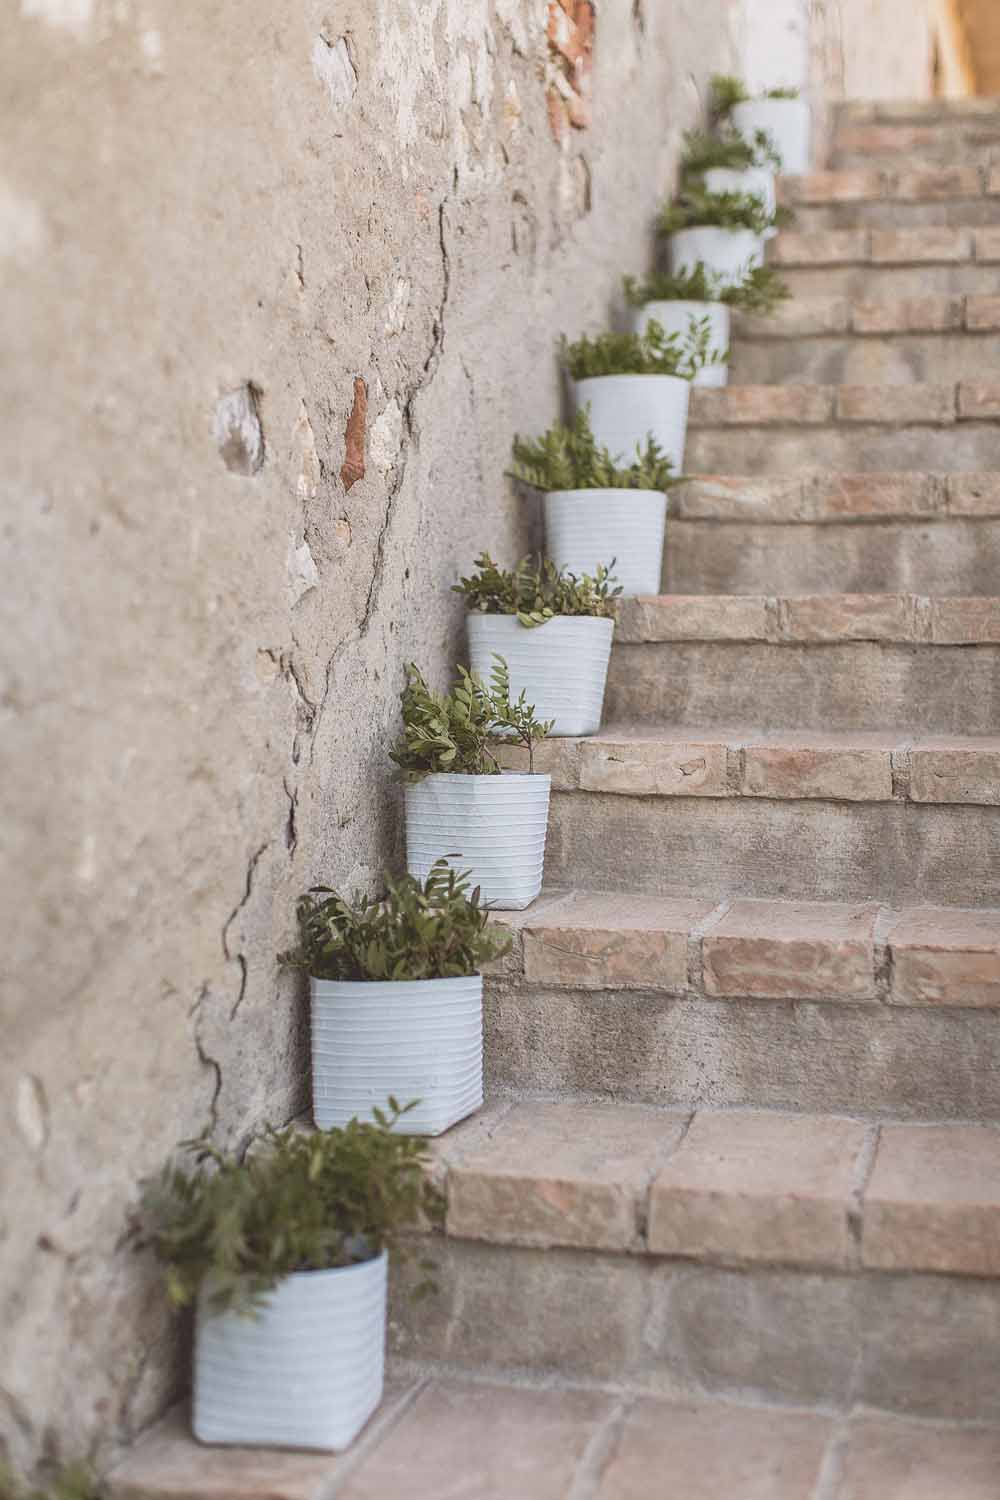 Staircase decoration herbs up outdoor steps destination wedding Locanda in Tuscany, Passion for Flowers